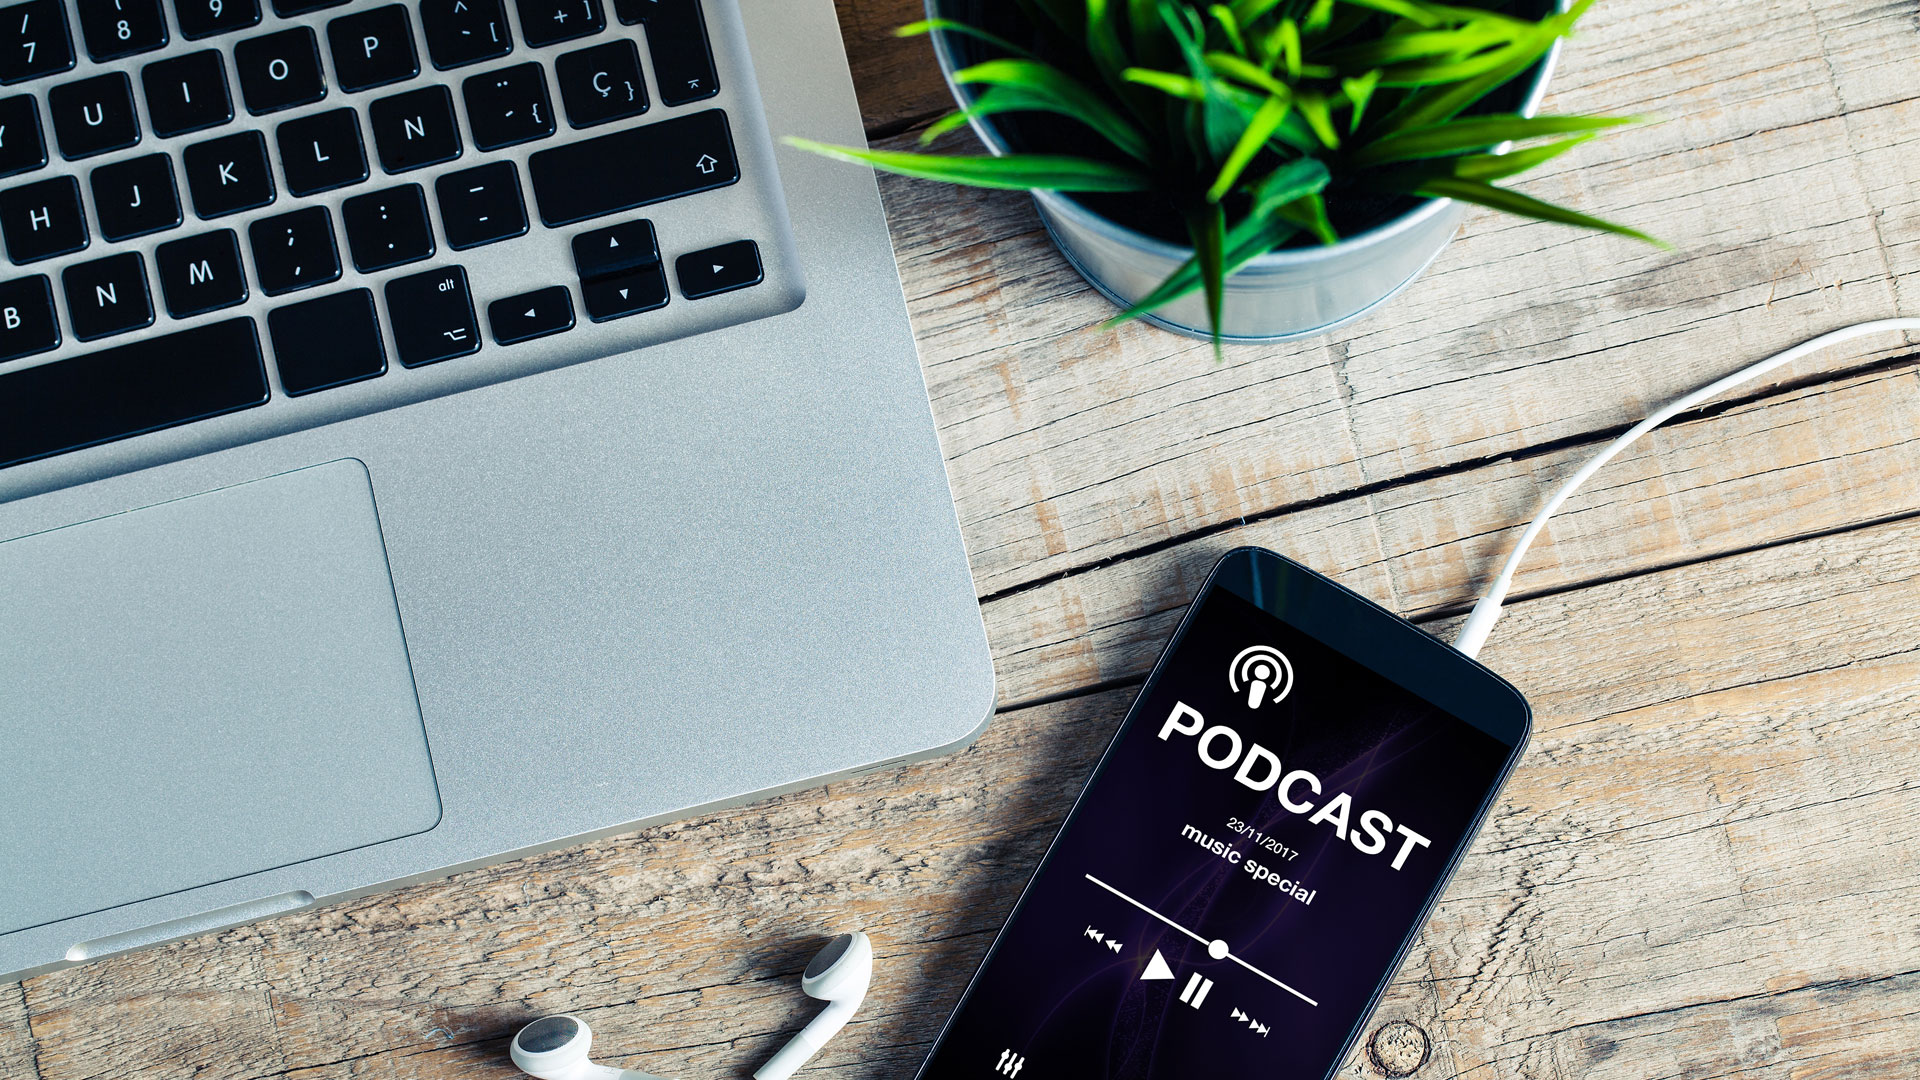 Capitalising on Podcasts: The 2021 Trends